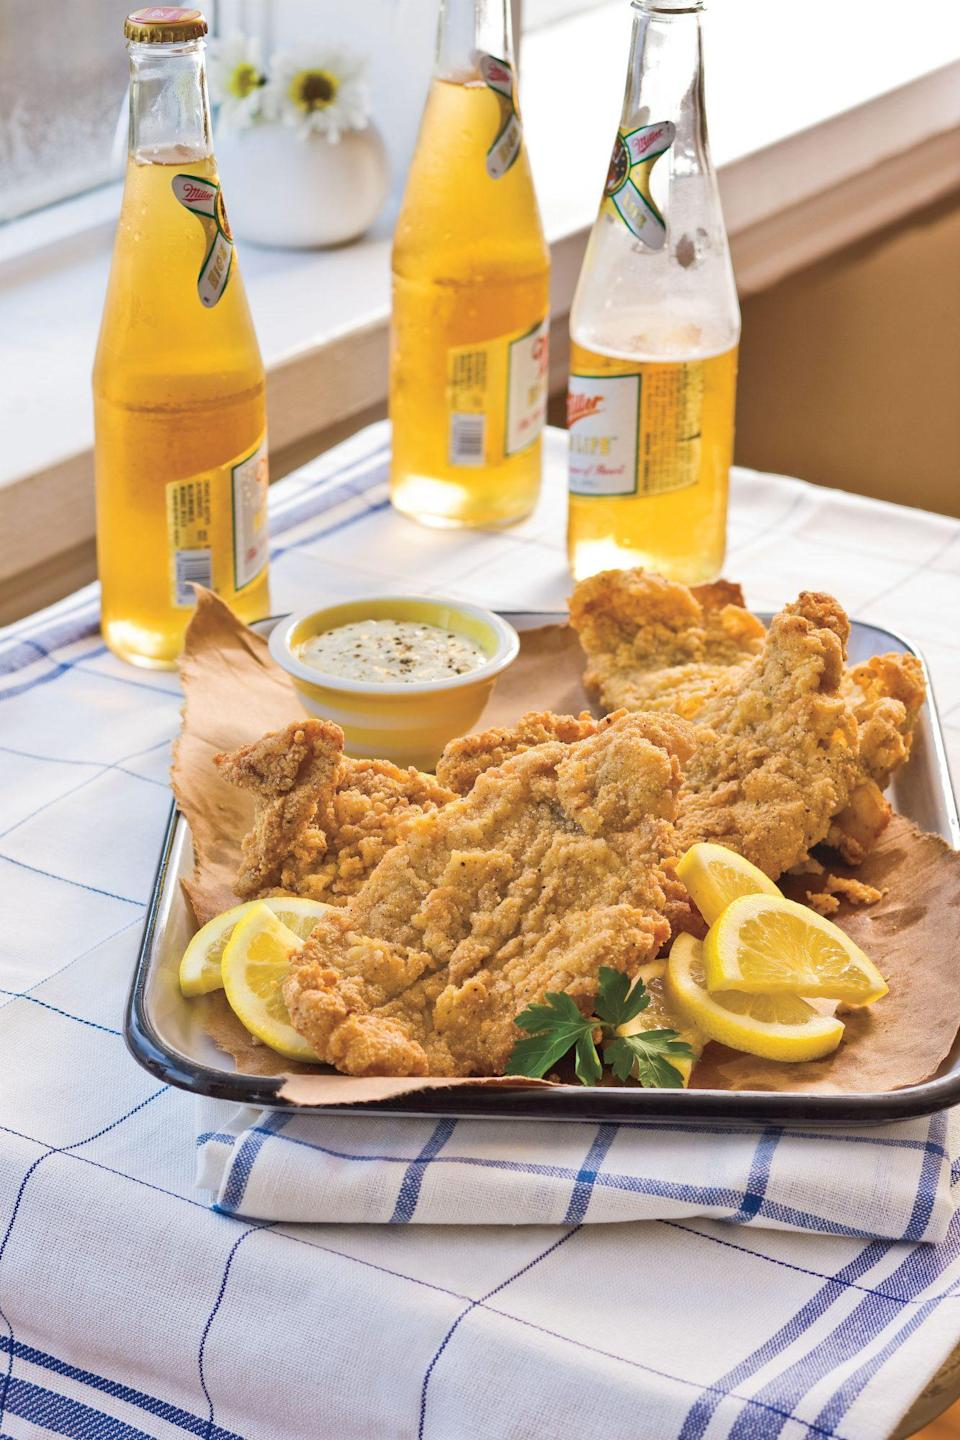 """<p><strong>Recipe: <a href=""""https://www.southernliving.com/recipes/fried-catfish"""" rel=""""nofollow noopener"""" target=""""_blank"""" data-ylk=""""slk:Classic Fried Catfish"""" class=""""link rapid-noclick-resp"""">Classic Fried Catfish</a></strong></p> <p>A homemade batch of fried catfish is begging to become your new go-to summertime supper. </p>"""